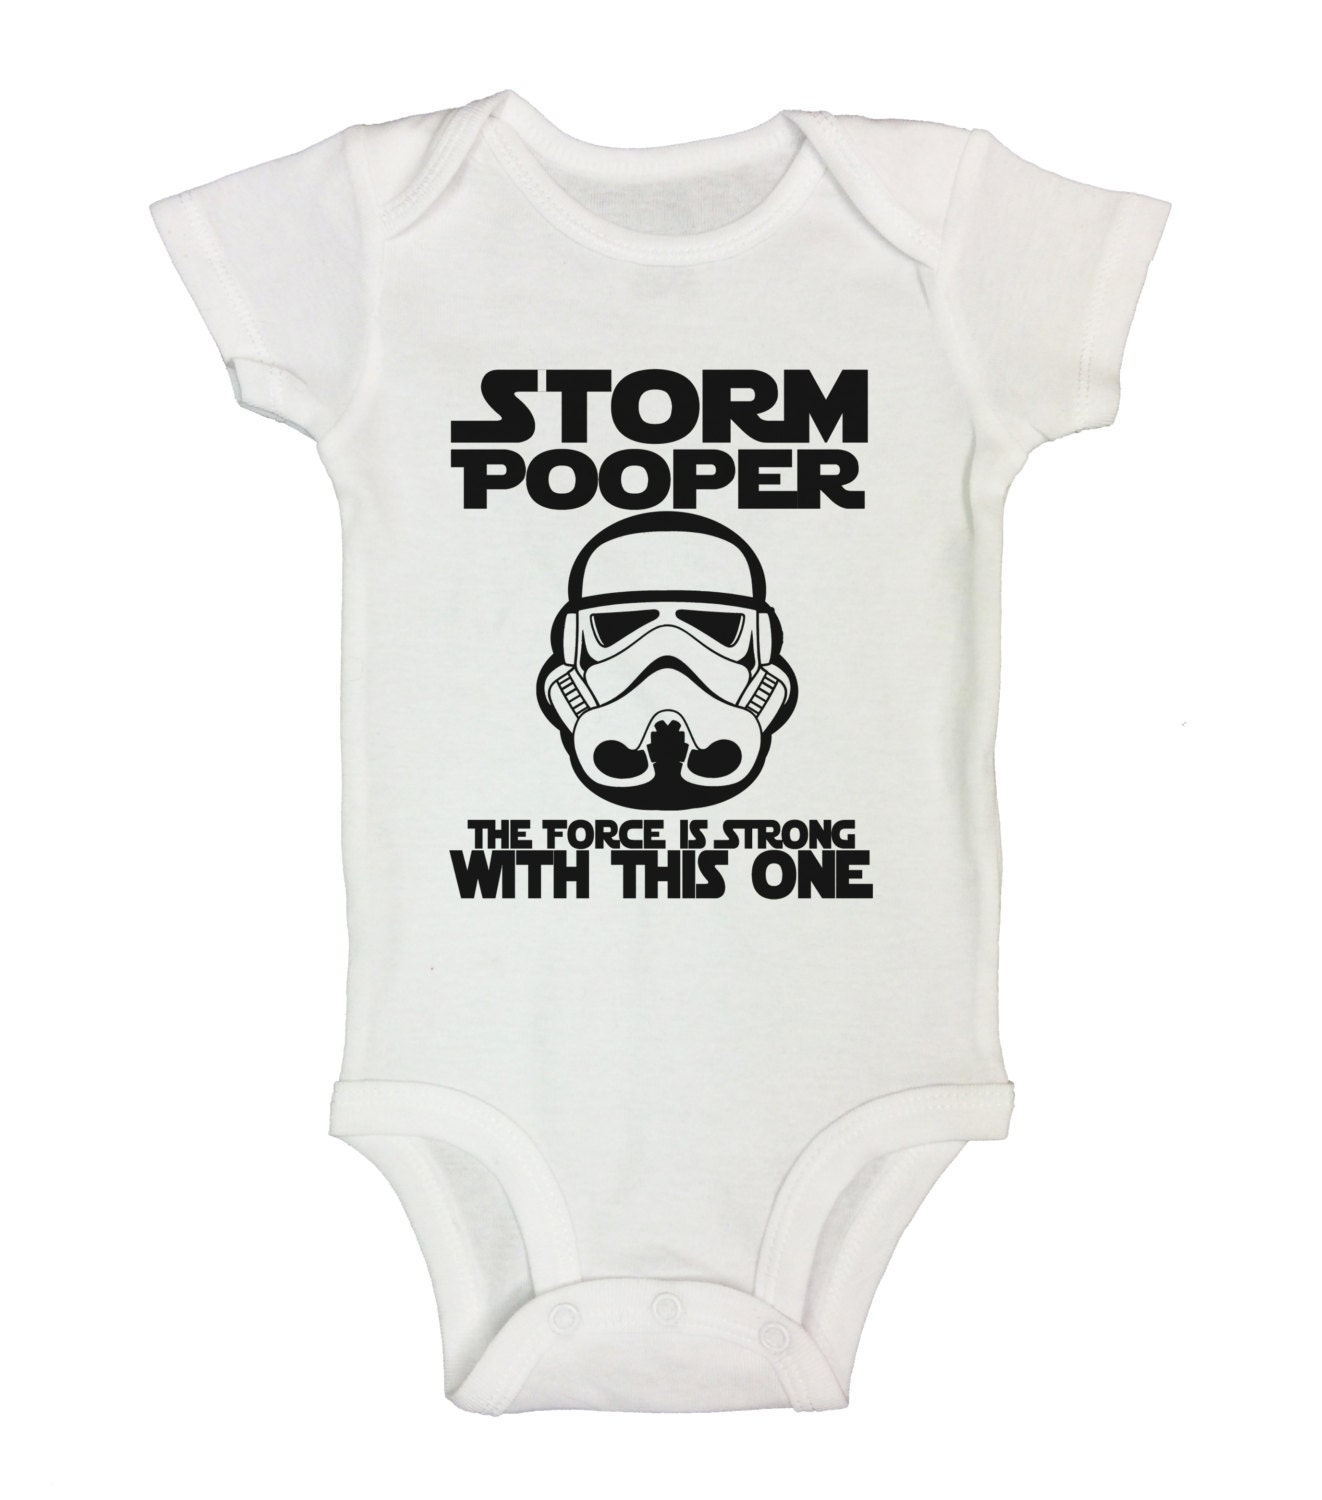 Funny Baby Clothing | Bbg Clothing